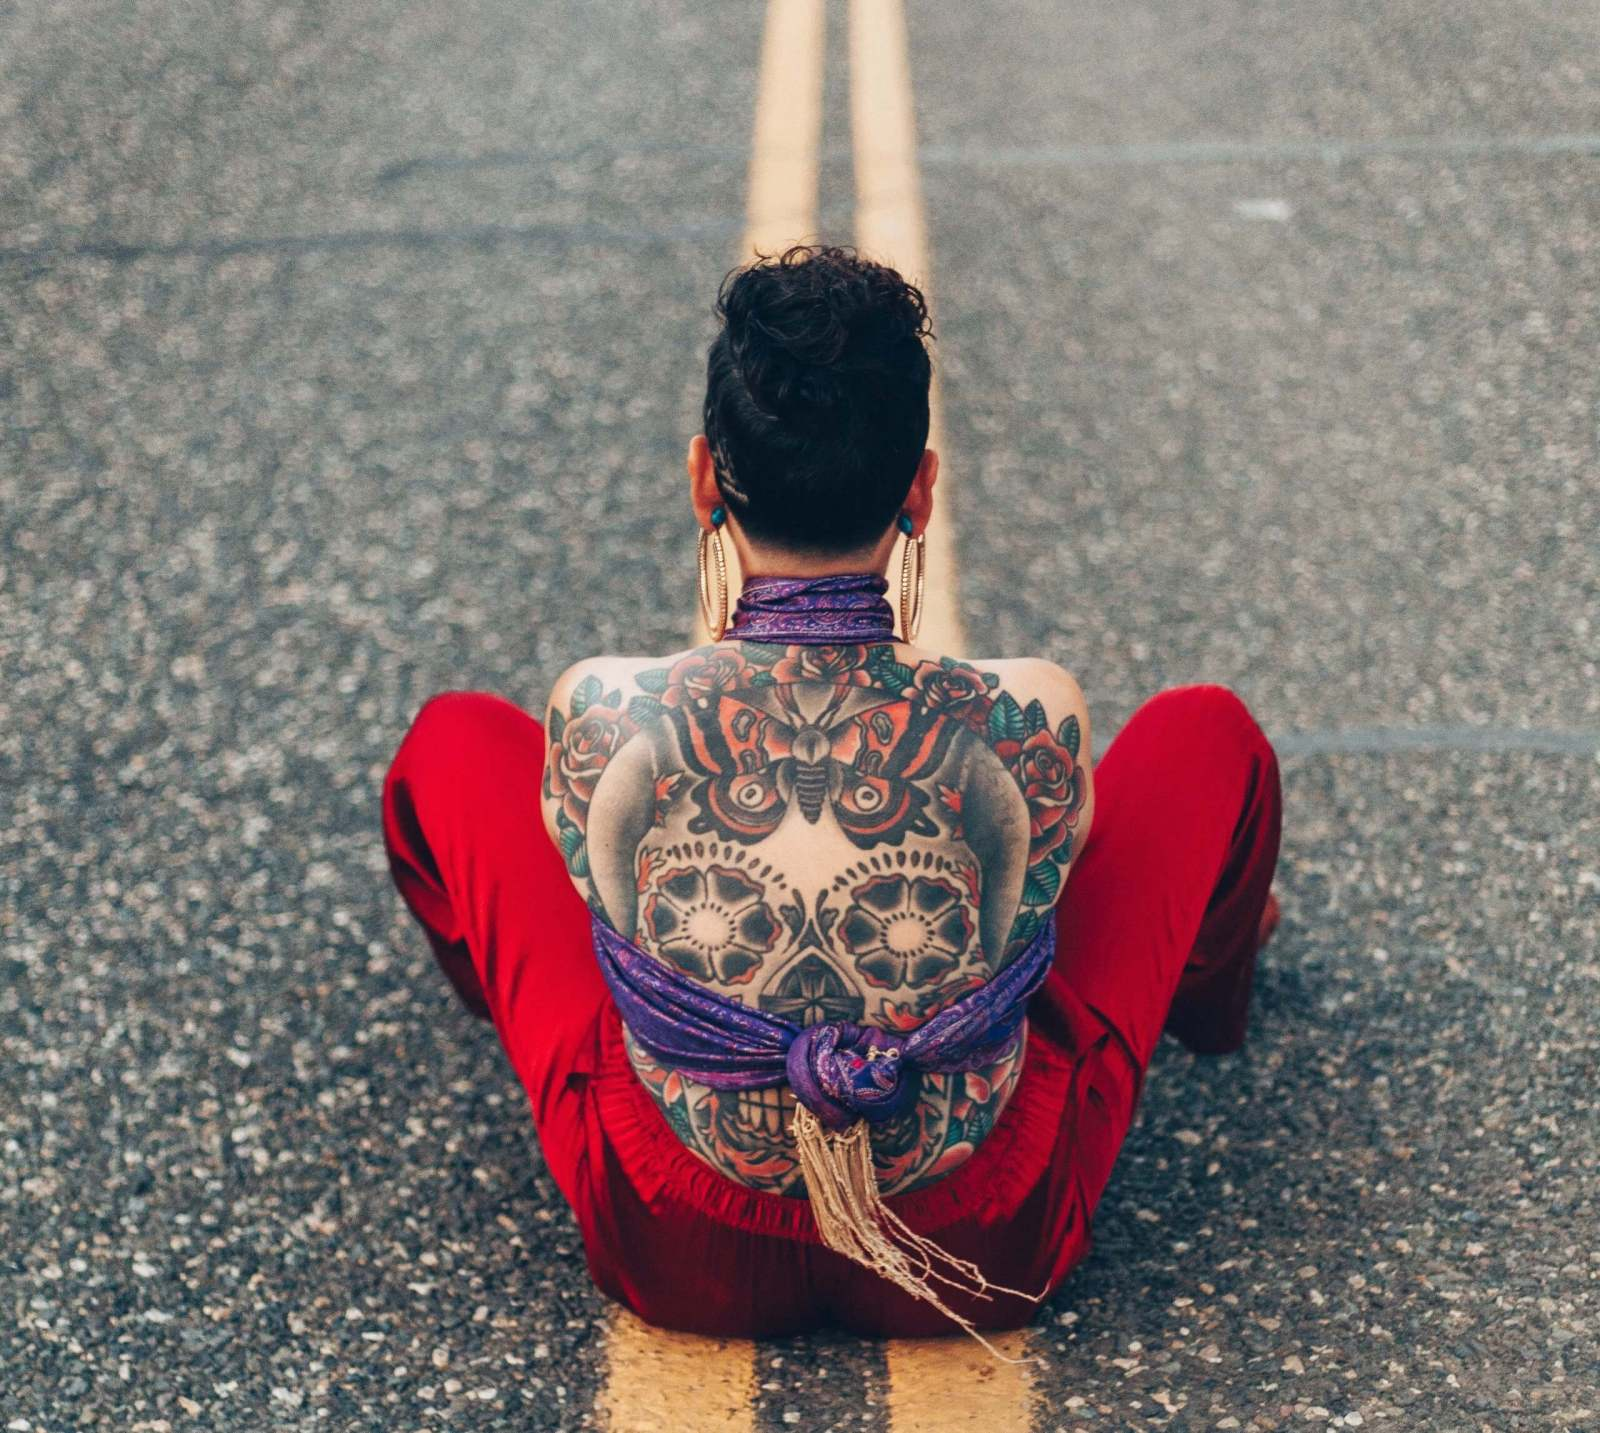 Woman sitting on a road. Her back has elaborate tattoo